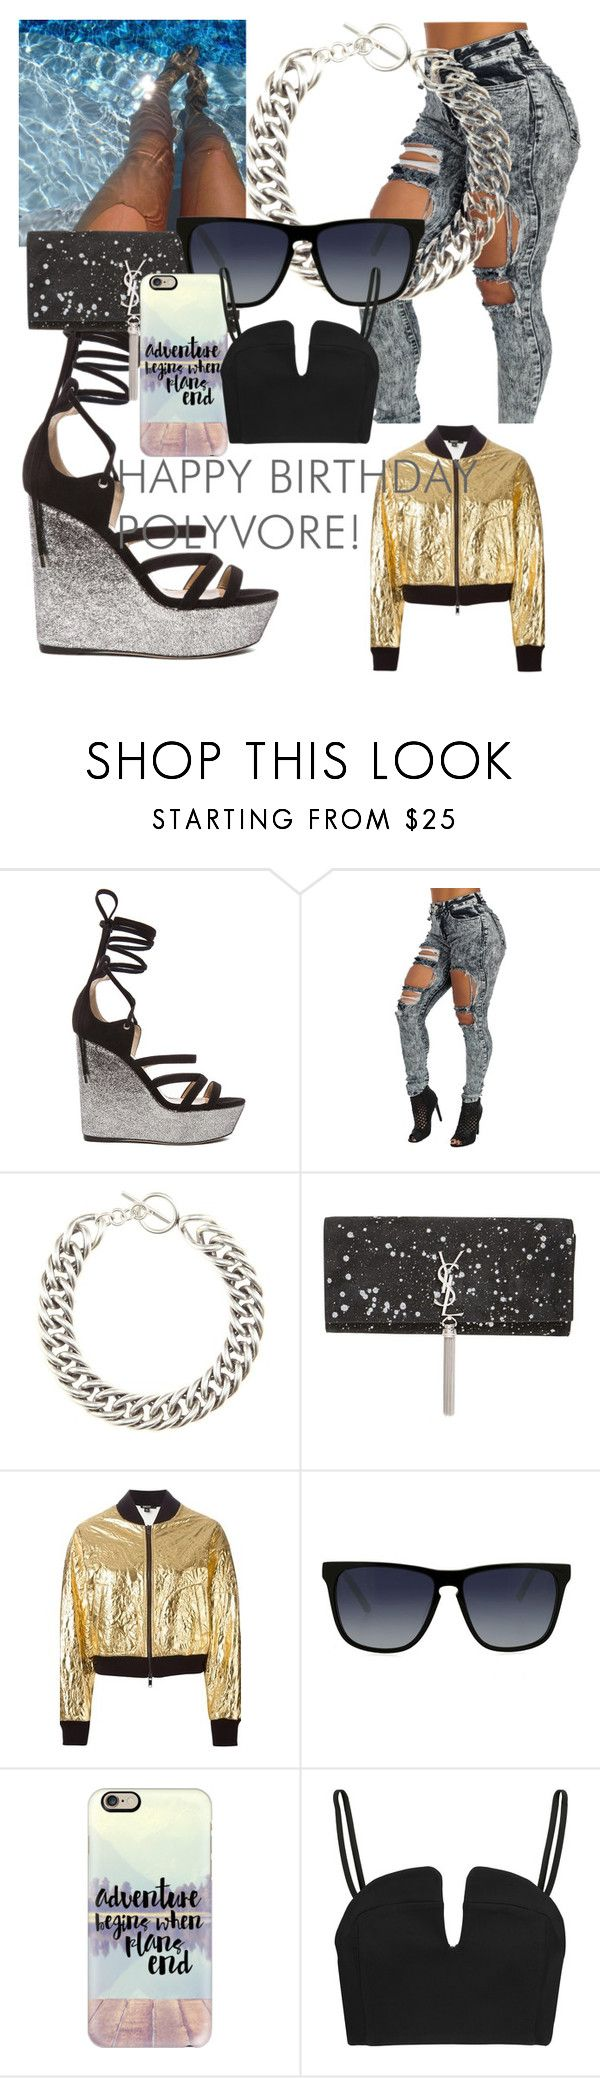 """""""The outfit for super bowl"""" by chrisneenee ❤ liked on Polyvore featuring Tamara Mellon, Yves Saint Laurent, DKNY, X-Ray, Casetify, Opening Ceremony, women's clothing, women, female and woman"""